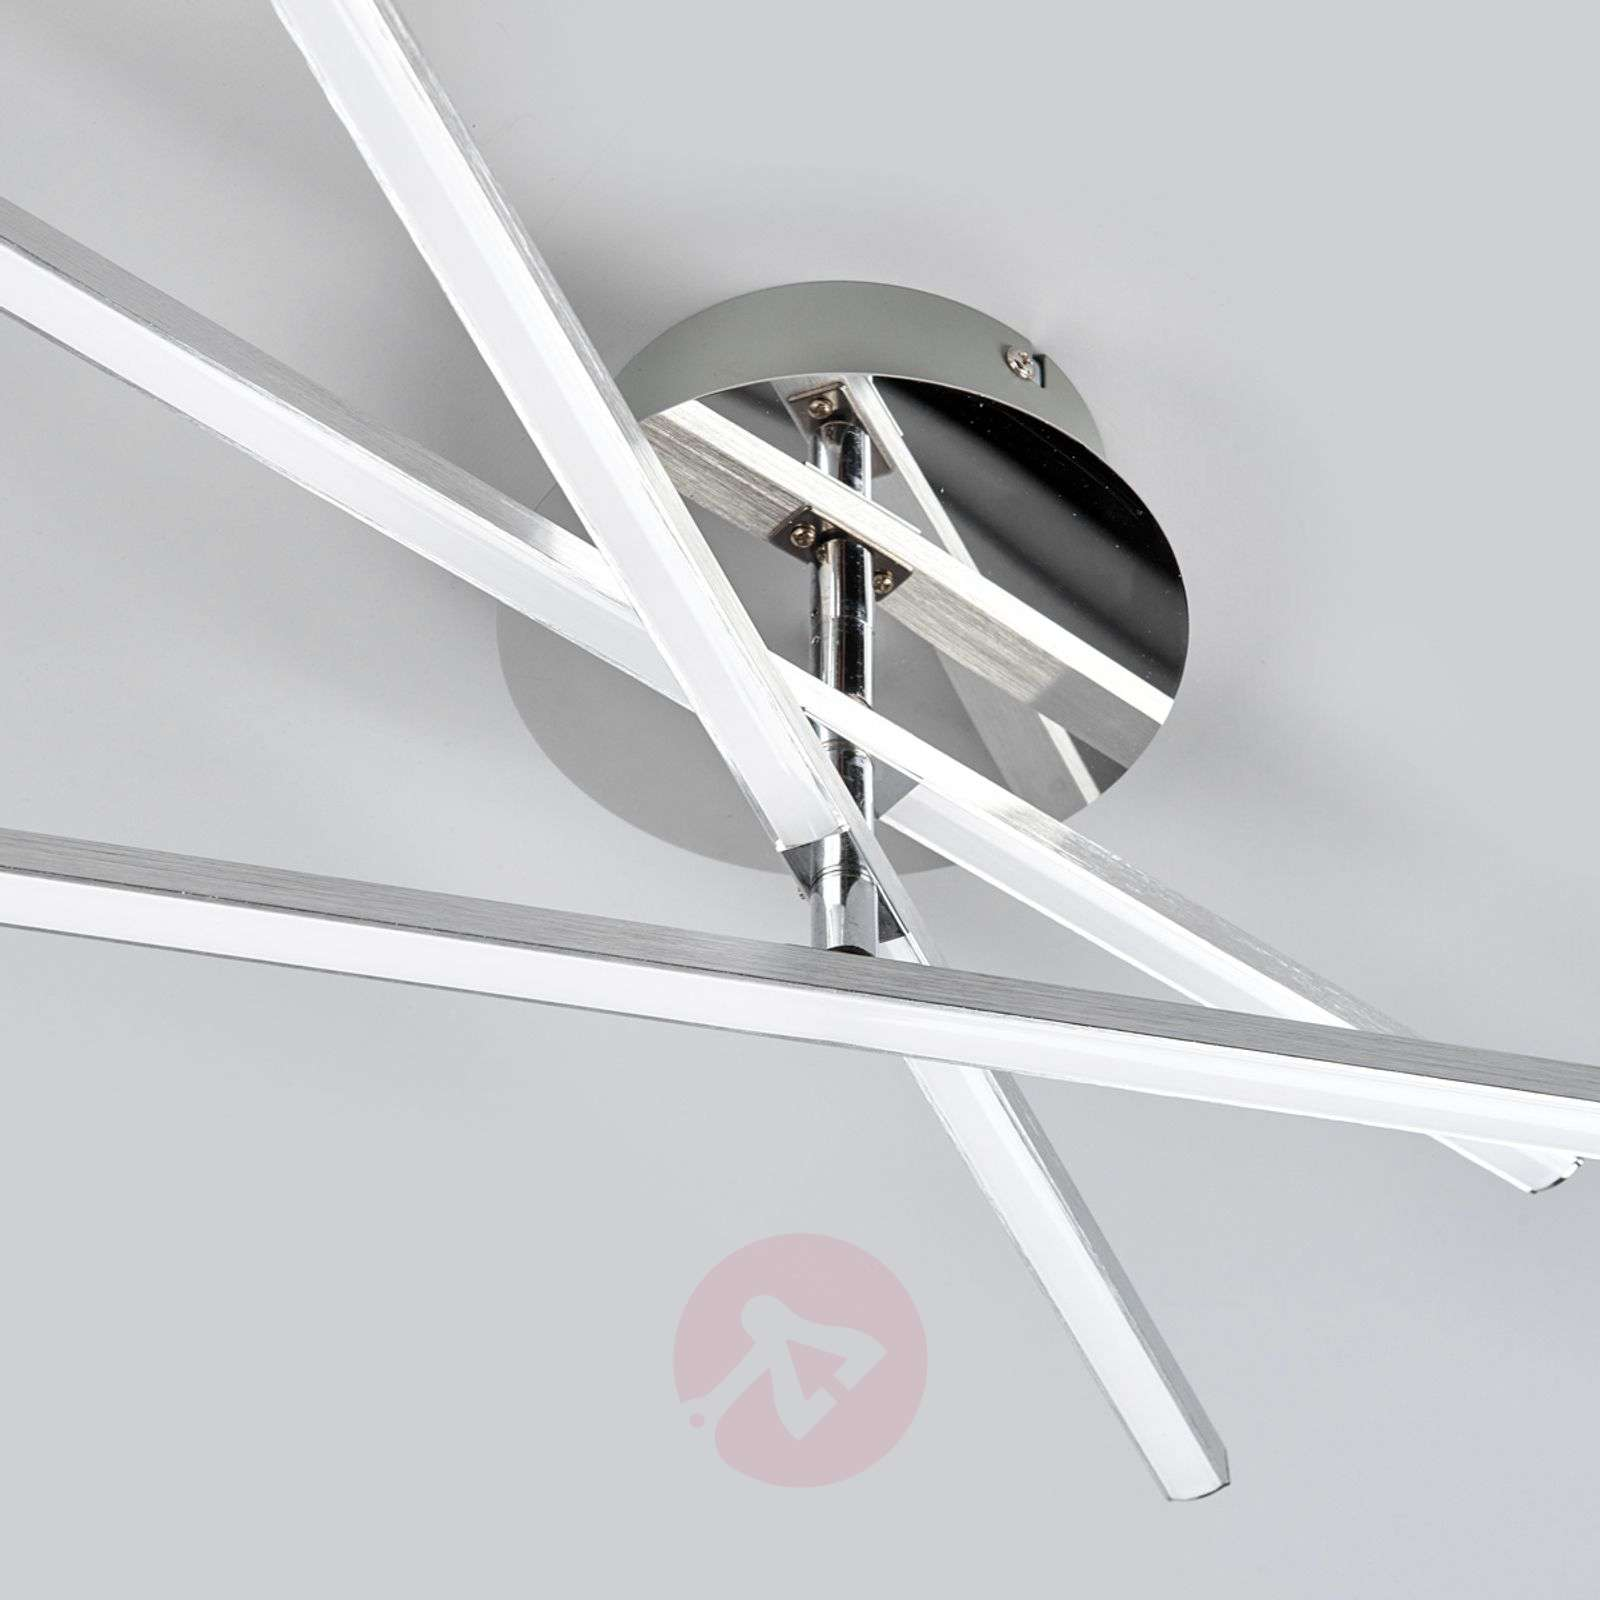 Puristic LED ceiling light Leana-9994084-02